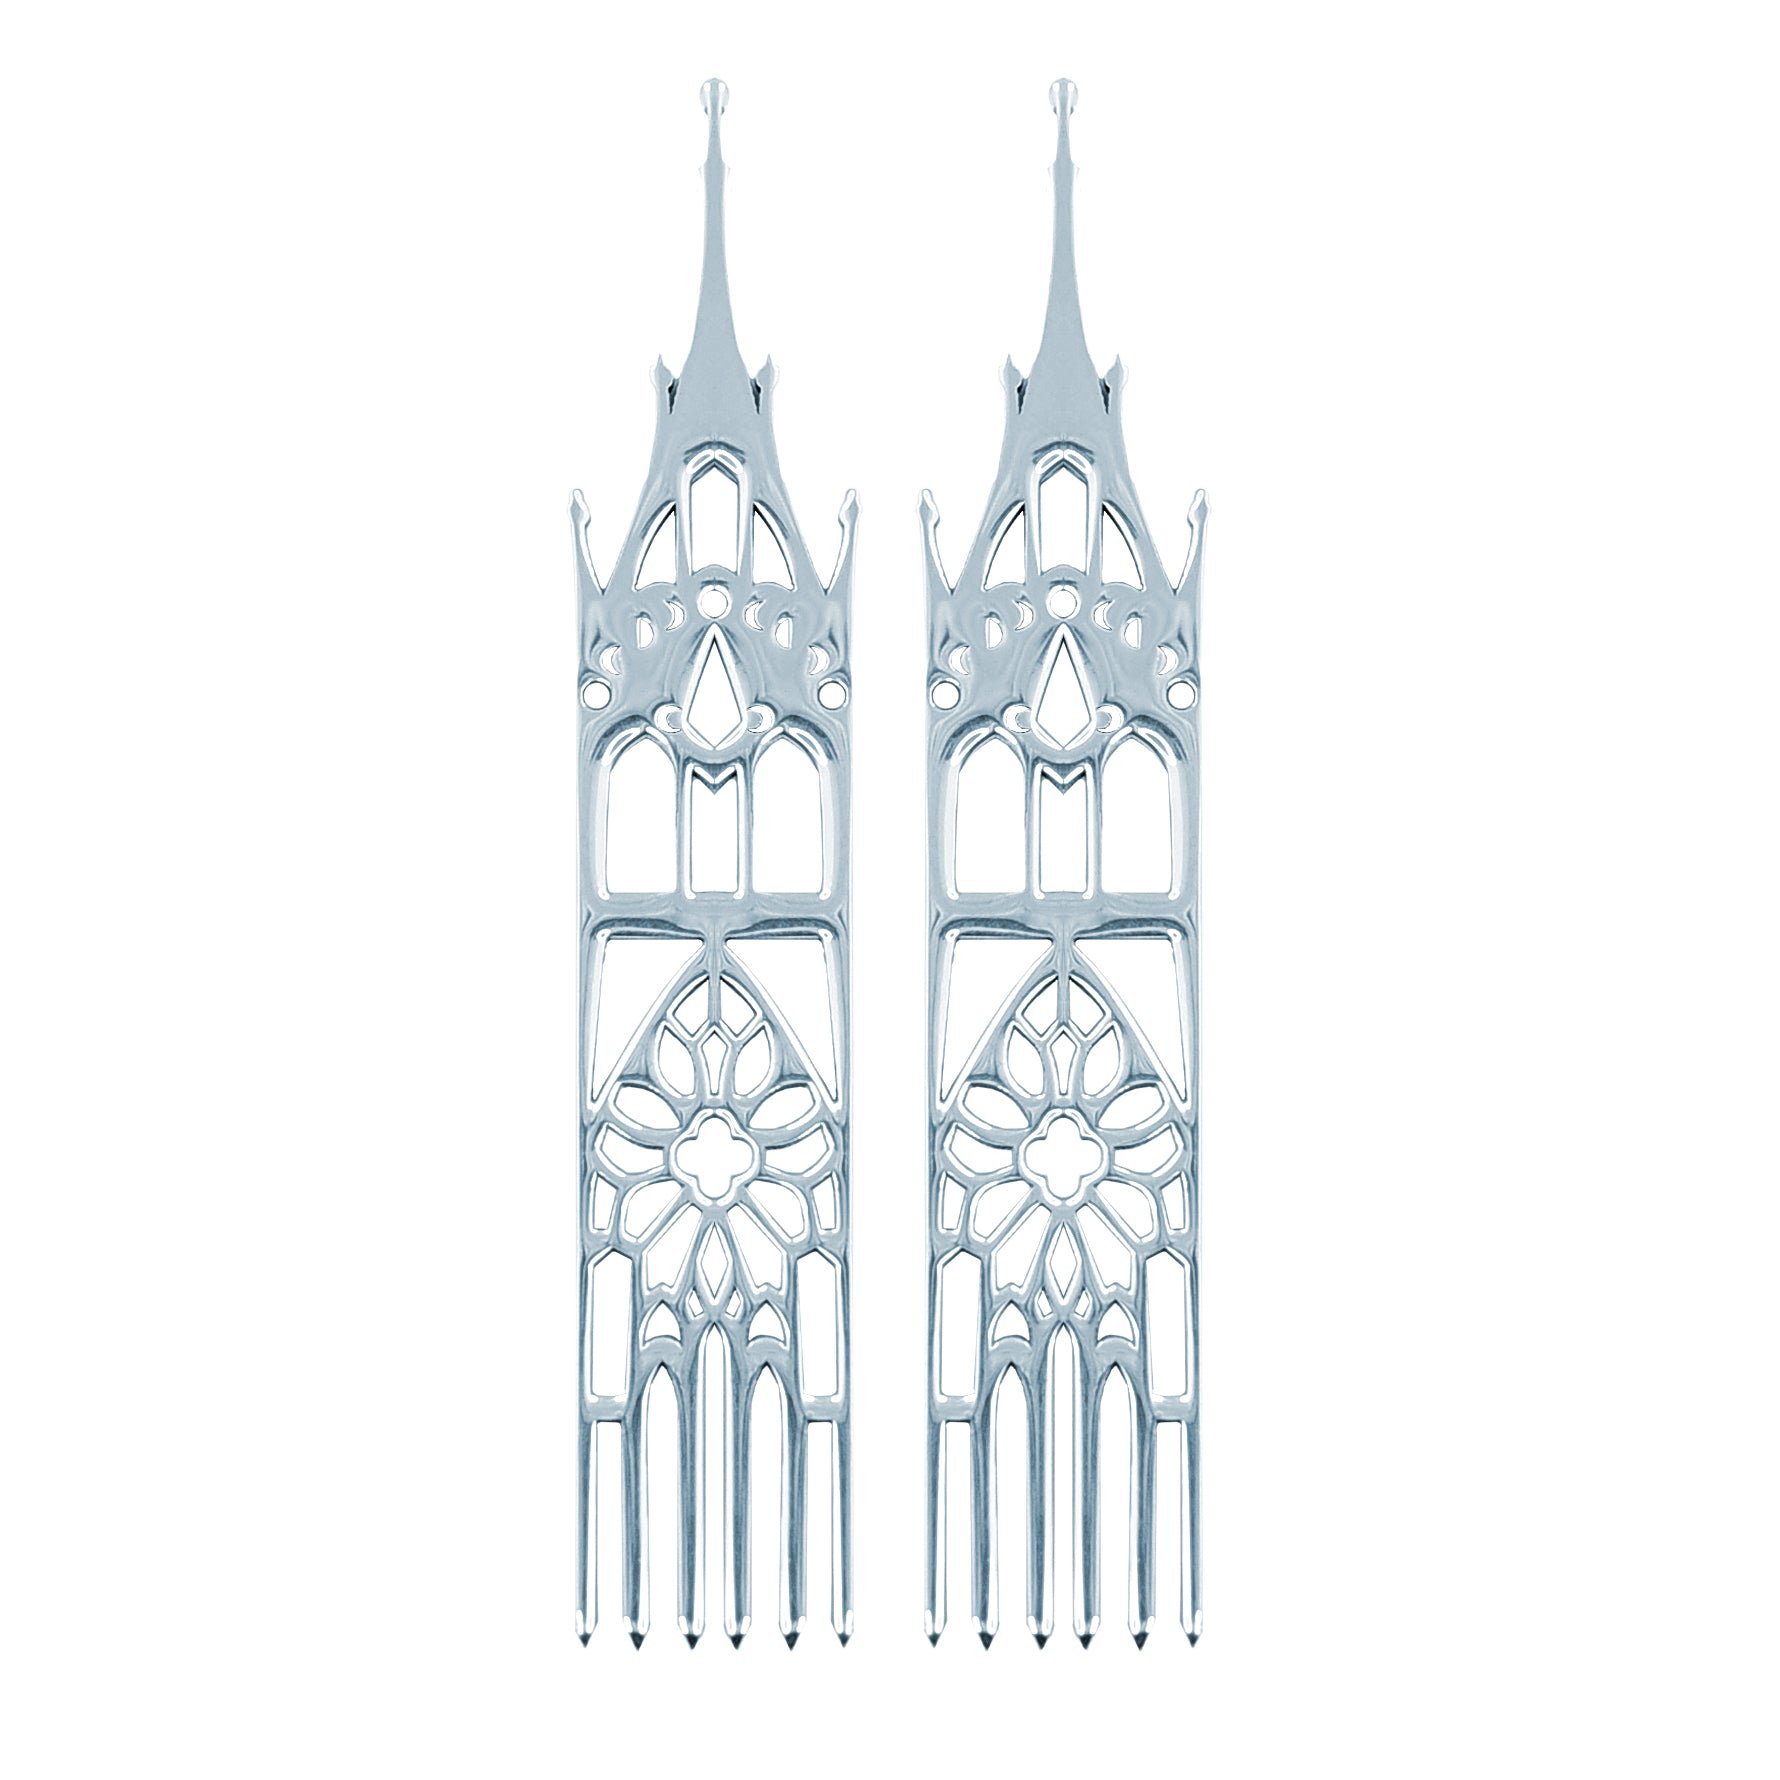 Sterling Silver Moon Cathedral Temple Earrings-Earrings-Inchoo Bijoux-Inchoo Bijoux